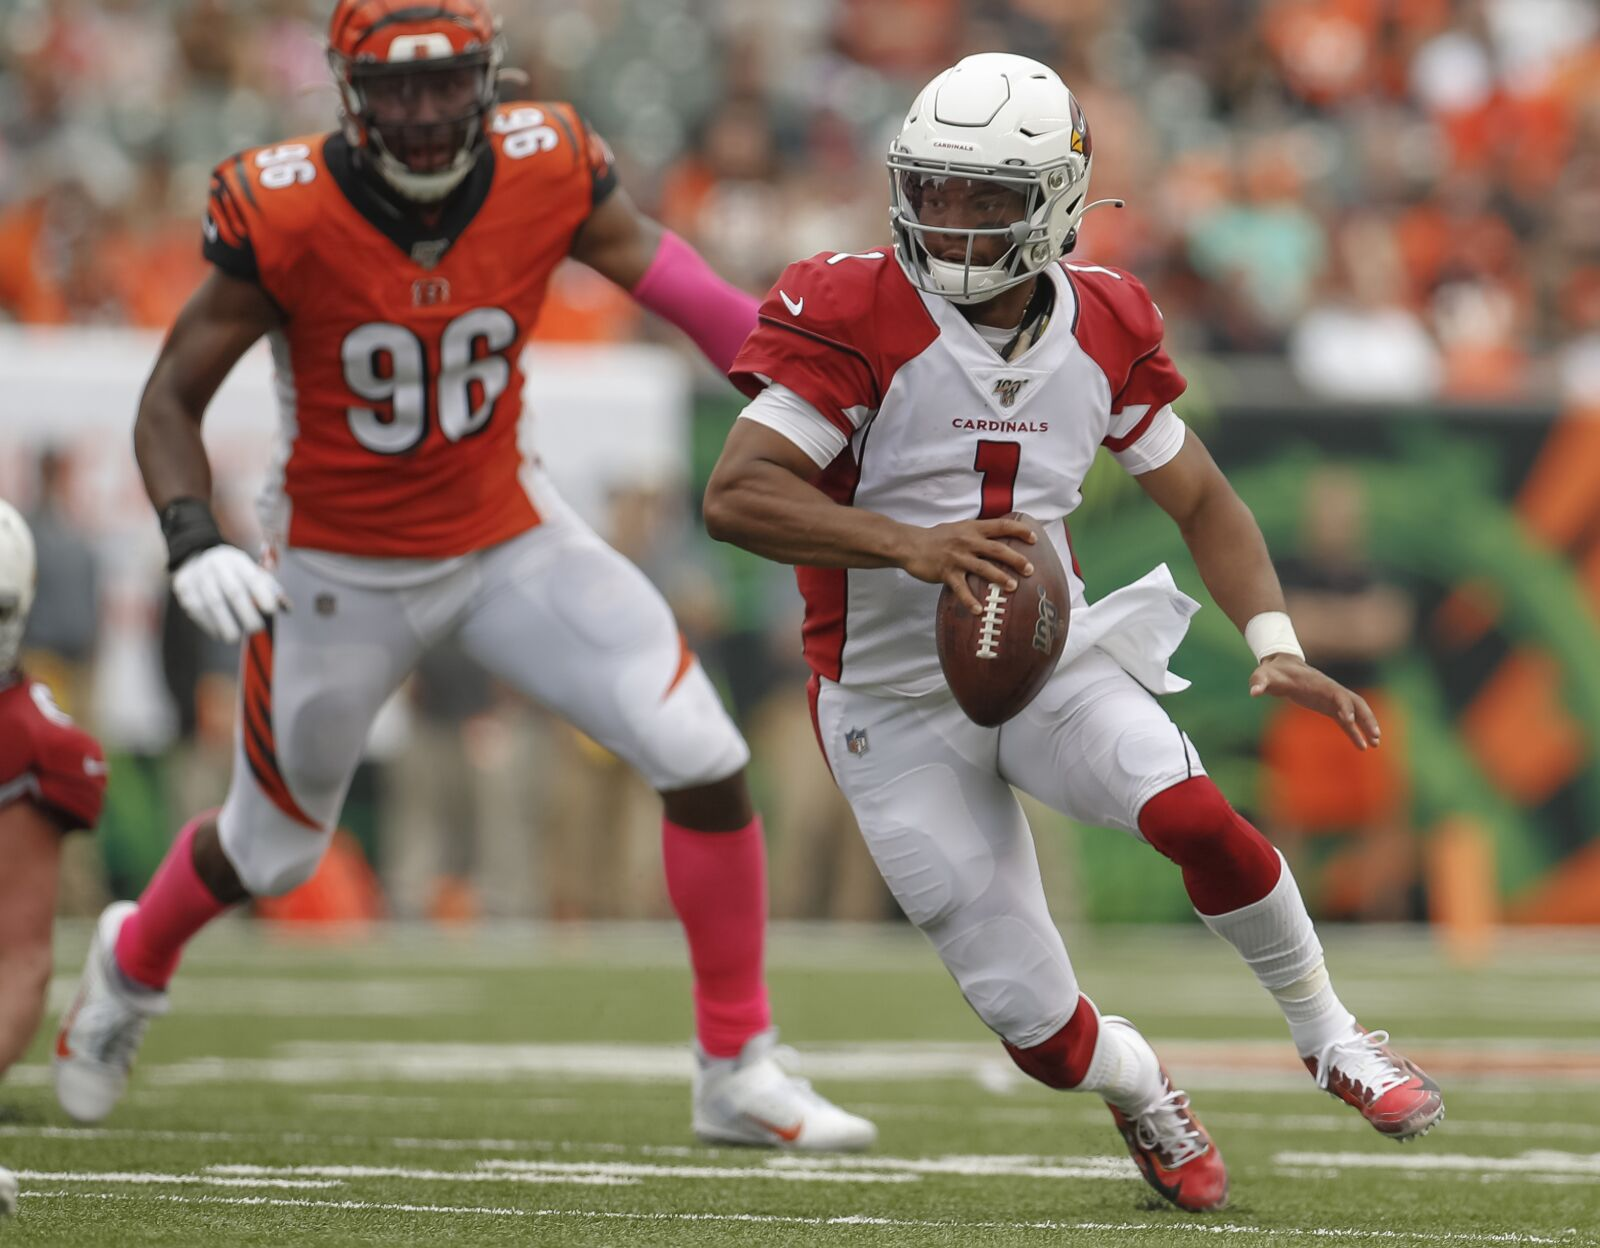 Arizona Cardinals players could have big night